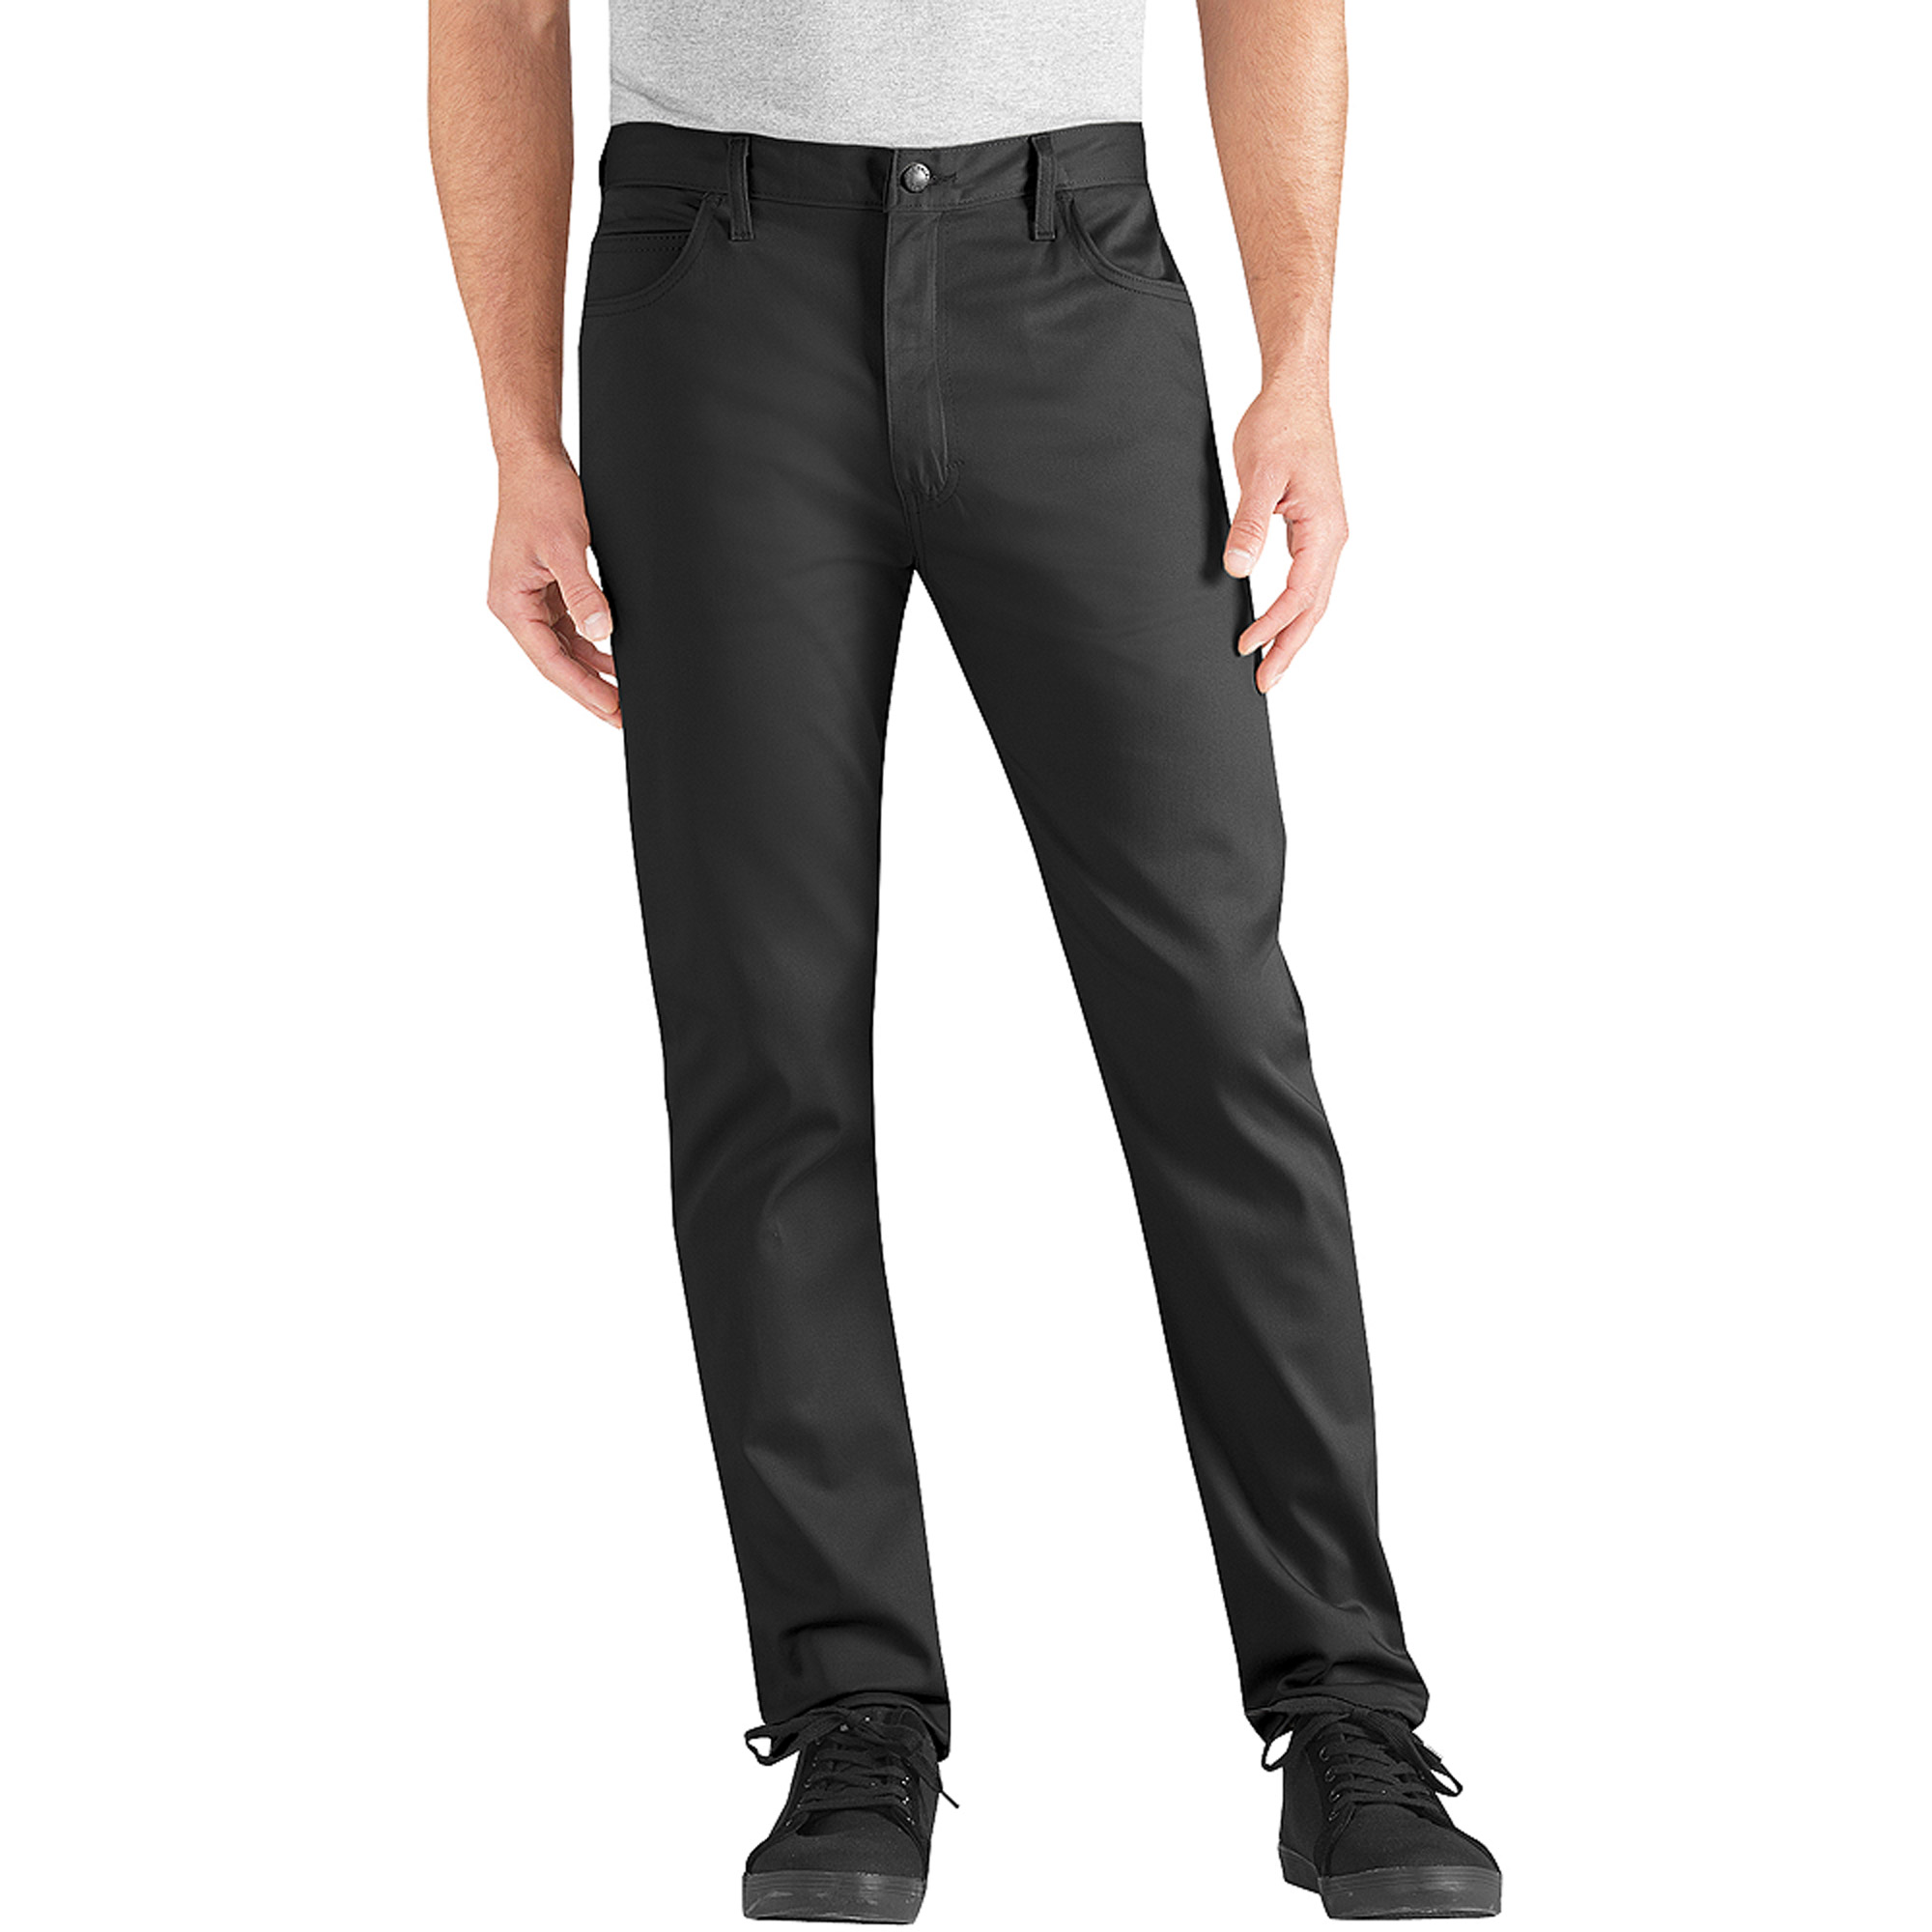 27f445e767e Genuine Dickies Big Men's Loose Fit Double-Knee Work Pants